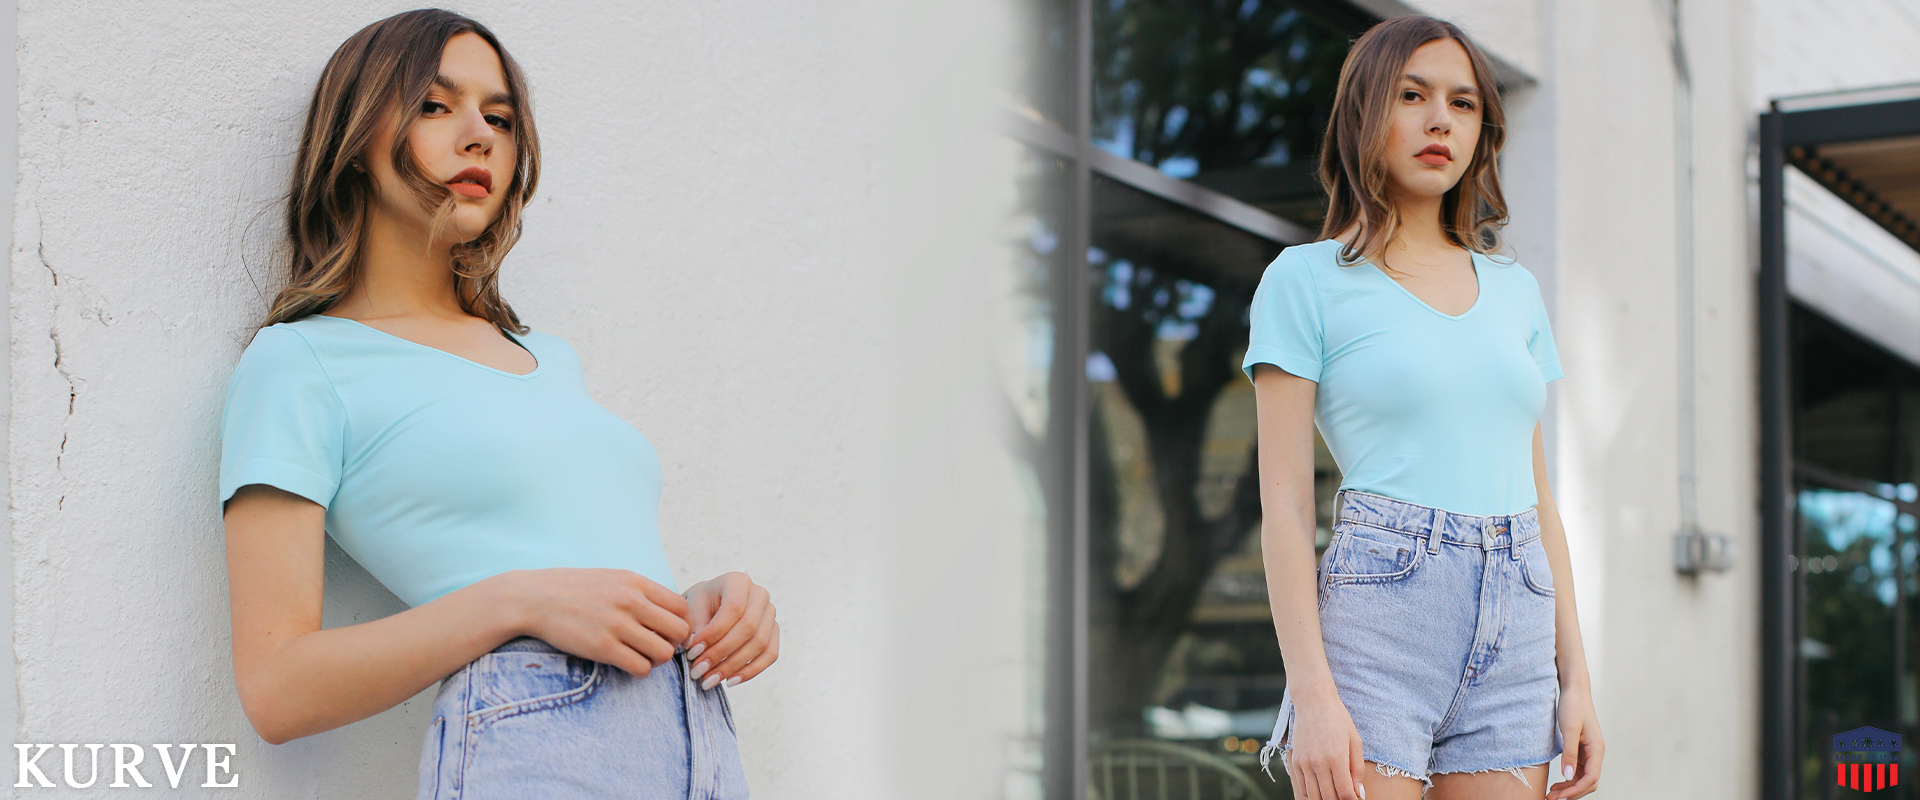 ideacollections-whole-sale-dancewear-kids-sports-web-banner-clothing-clothes-children